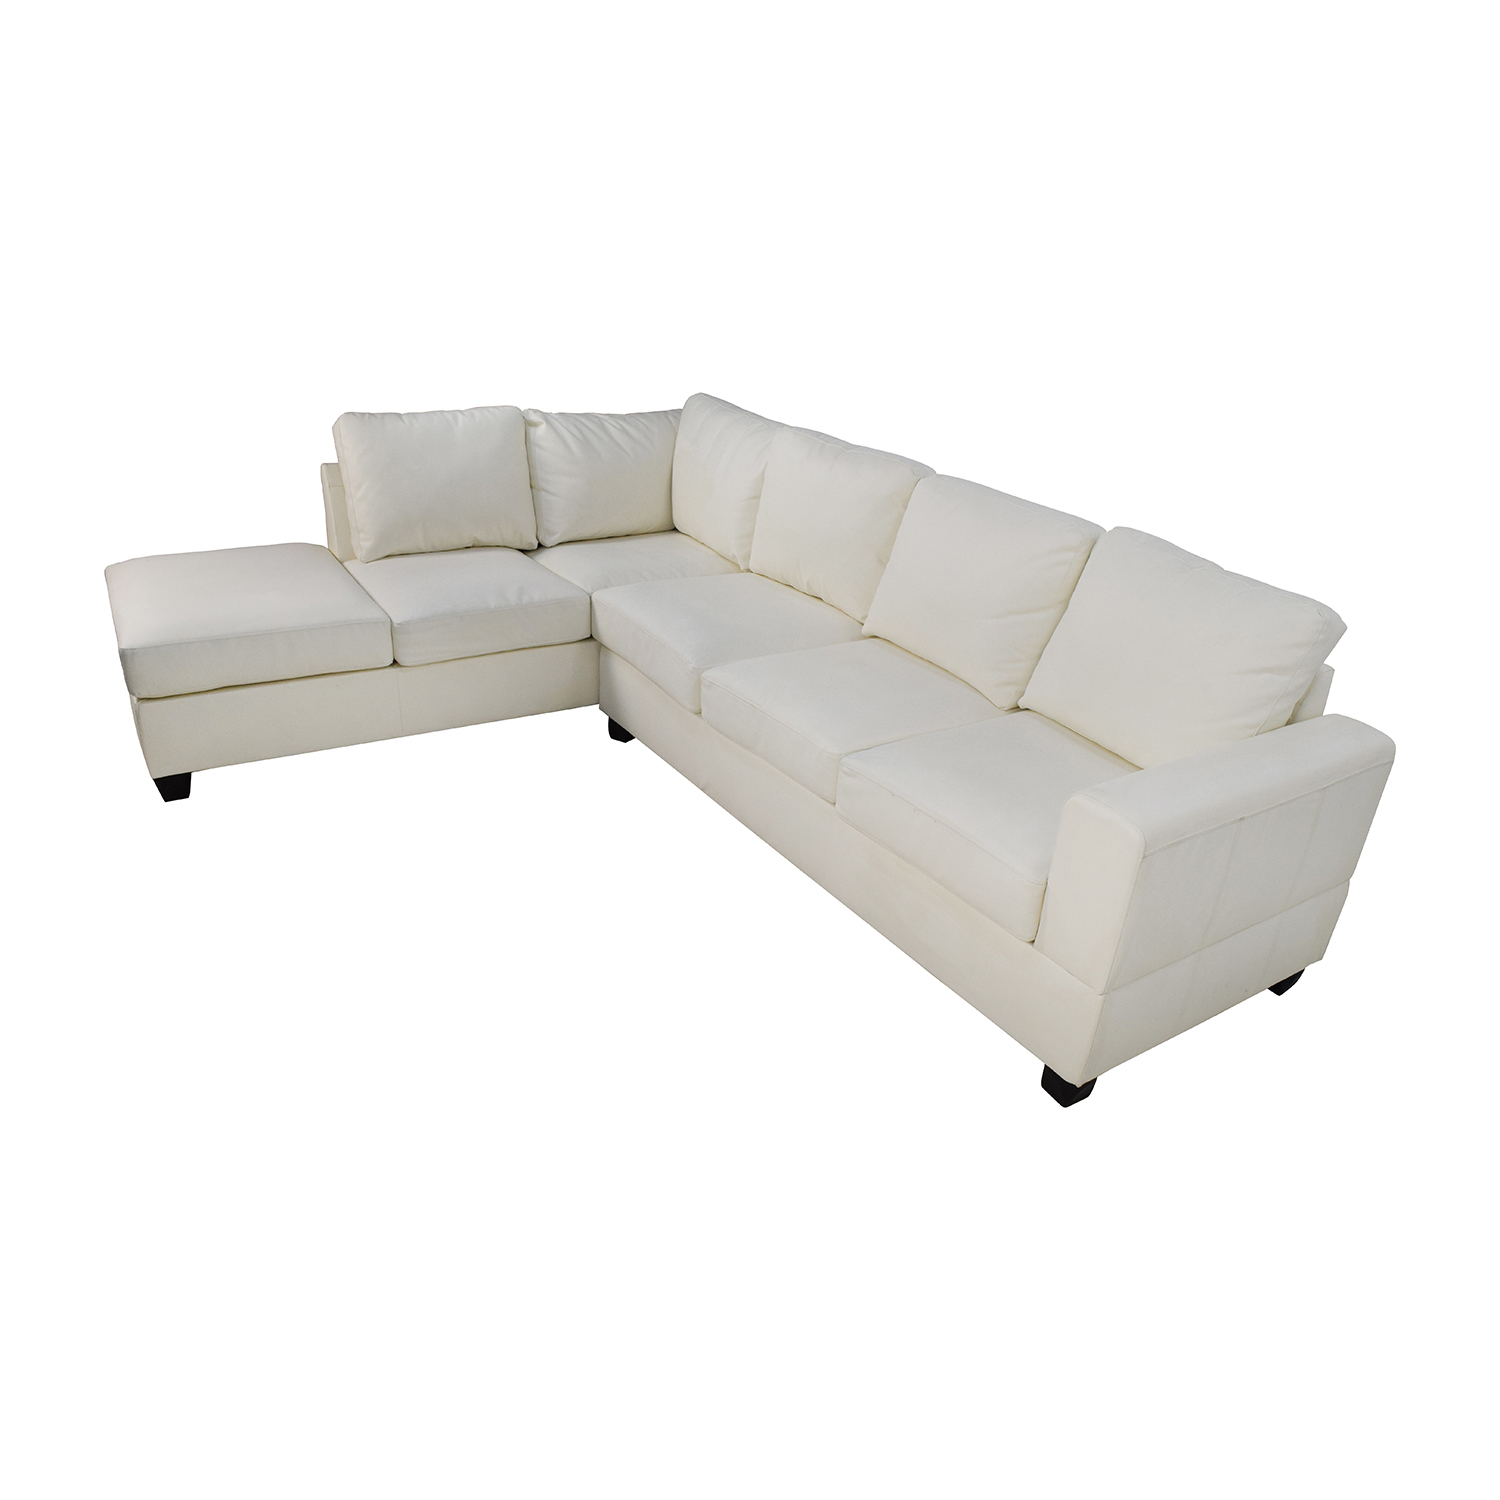 45% OFF - L-Shaped White Leather Sectional / Sofas